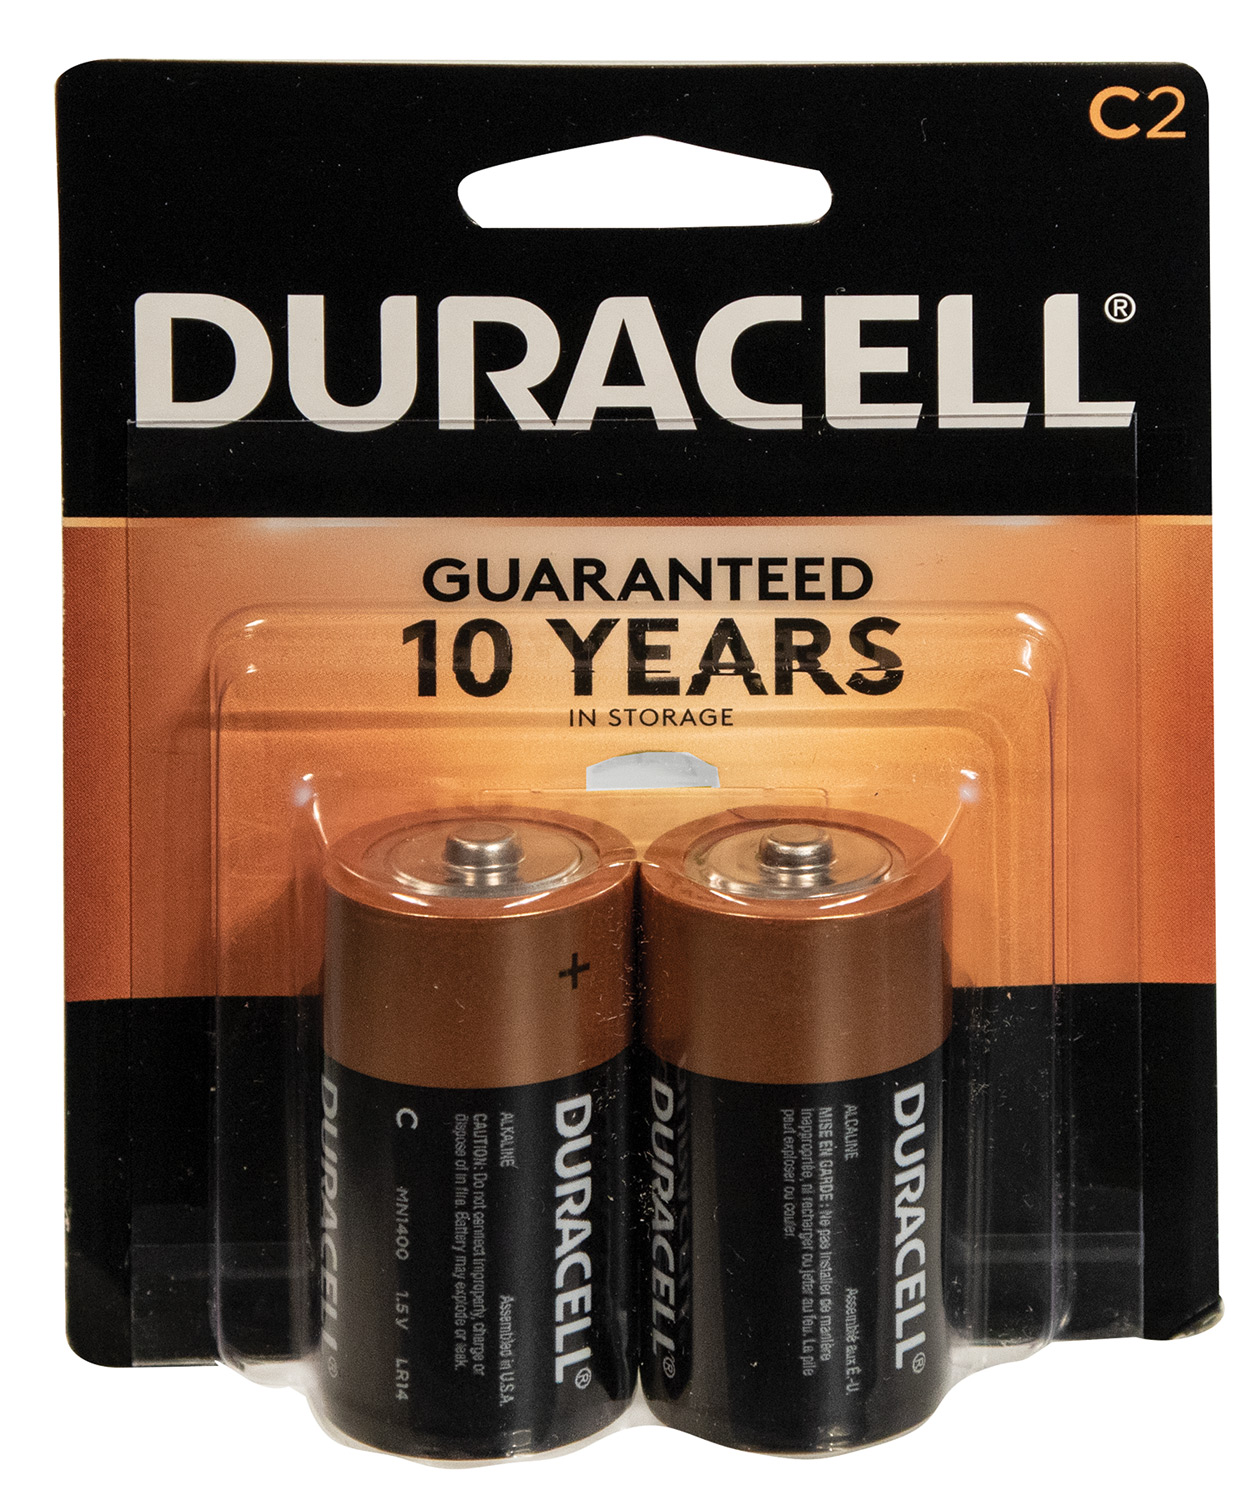 Duracell 2 C Batteries